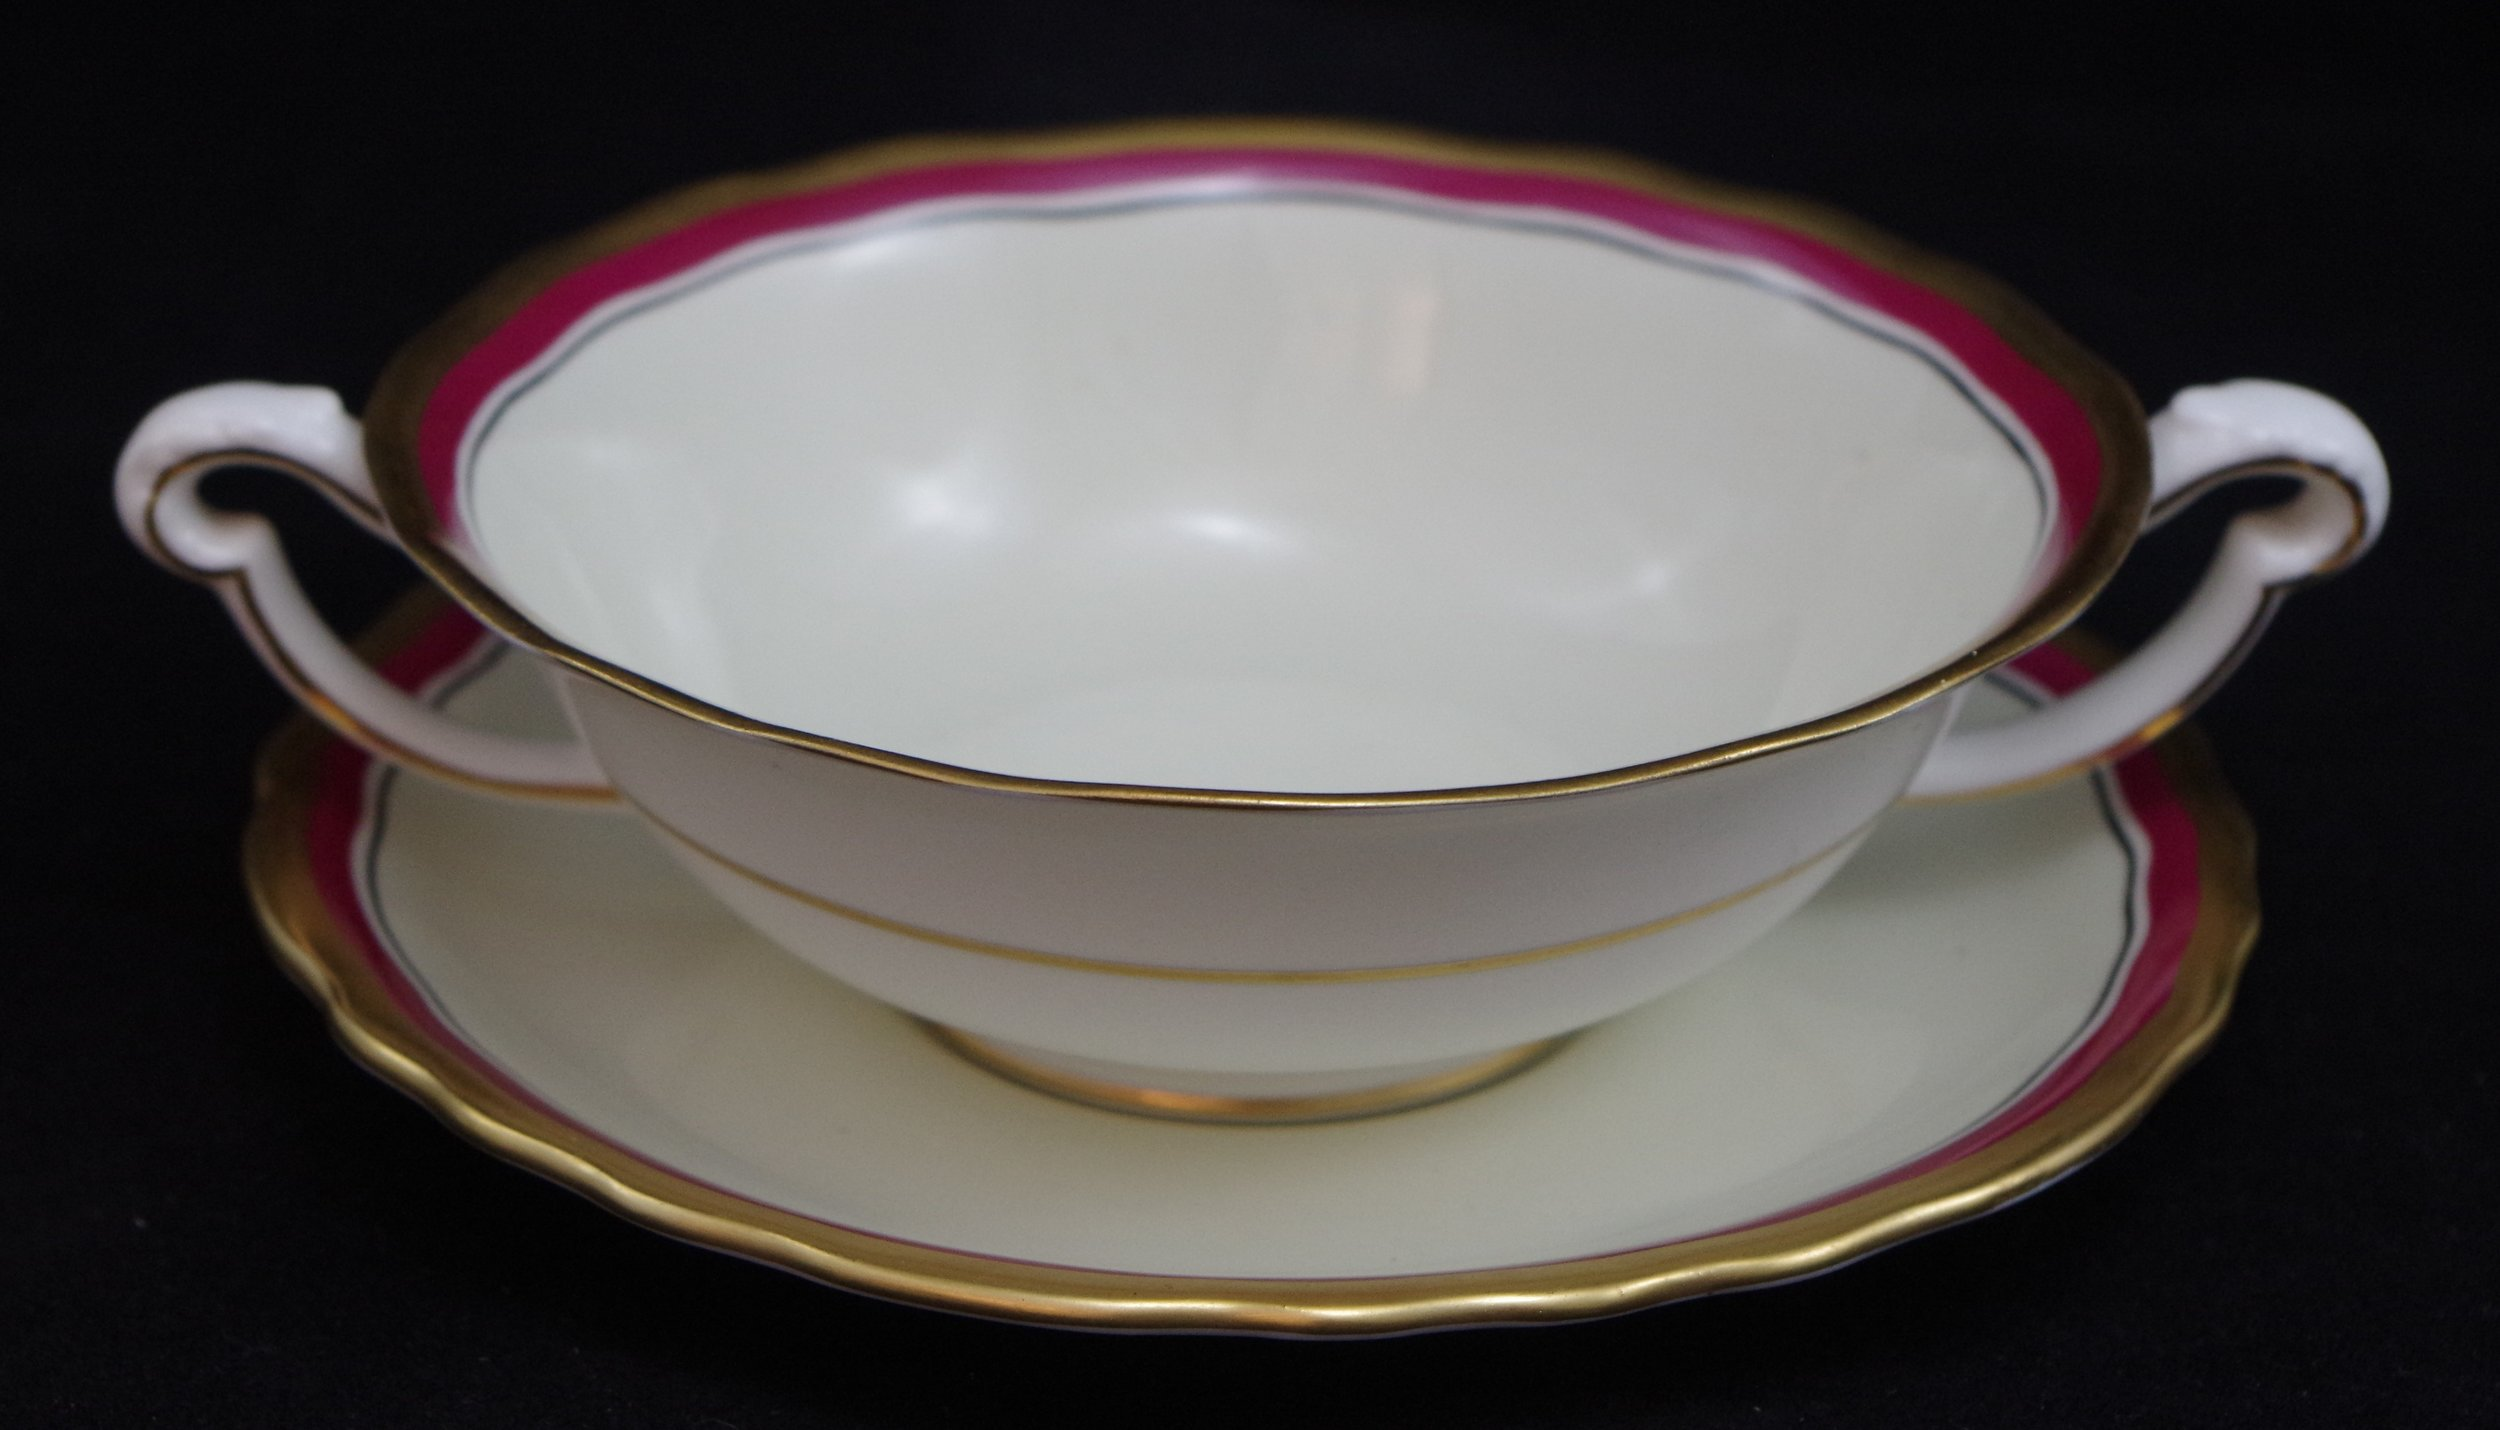 royal-crown-derby-ely-soup-and-stand-ivory-ground-inside-thick-gold-edge-maroon-band-black-line